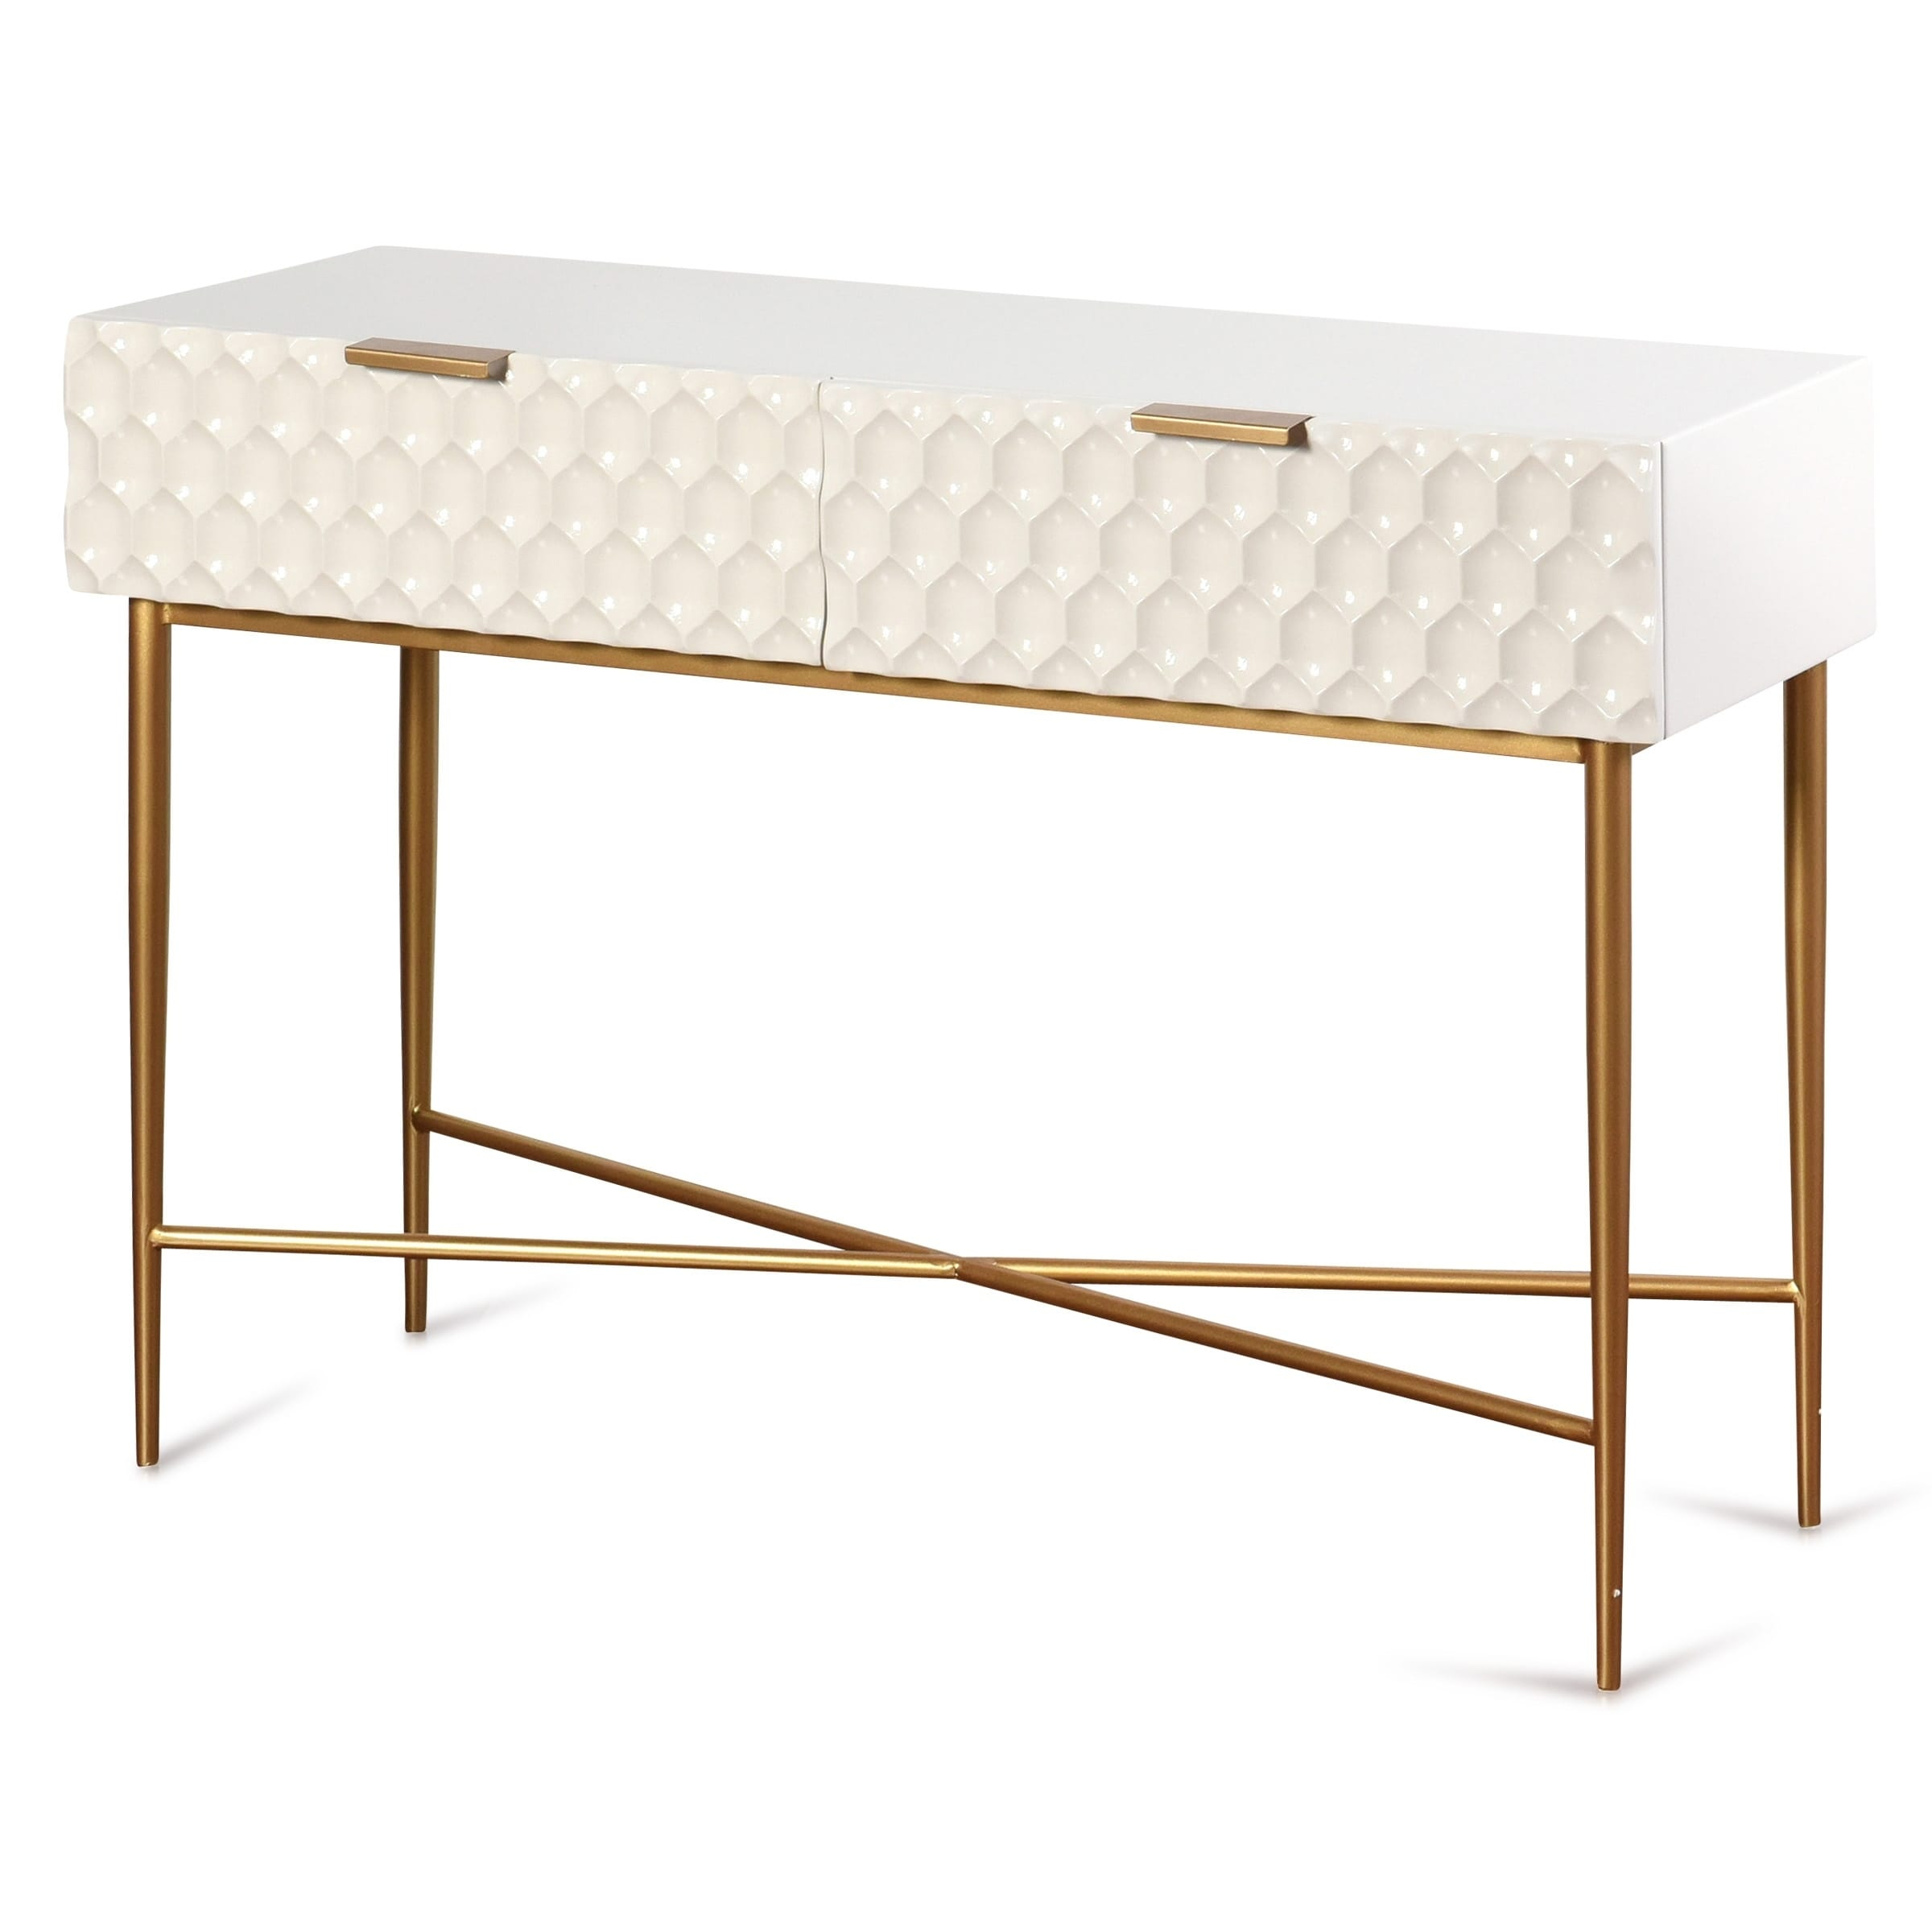 Stylecraft Glossy White Textured 2 Drawer Console Table With Gold Hardware Overstock 30290413